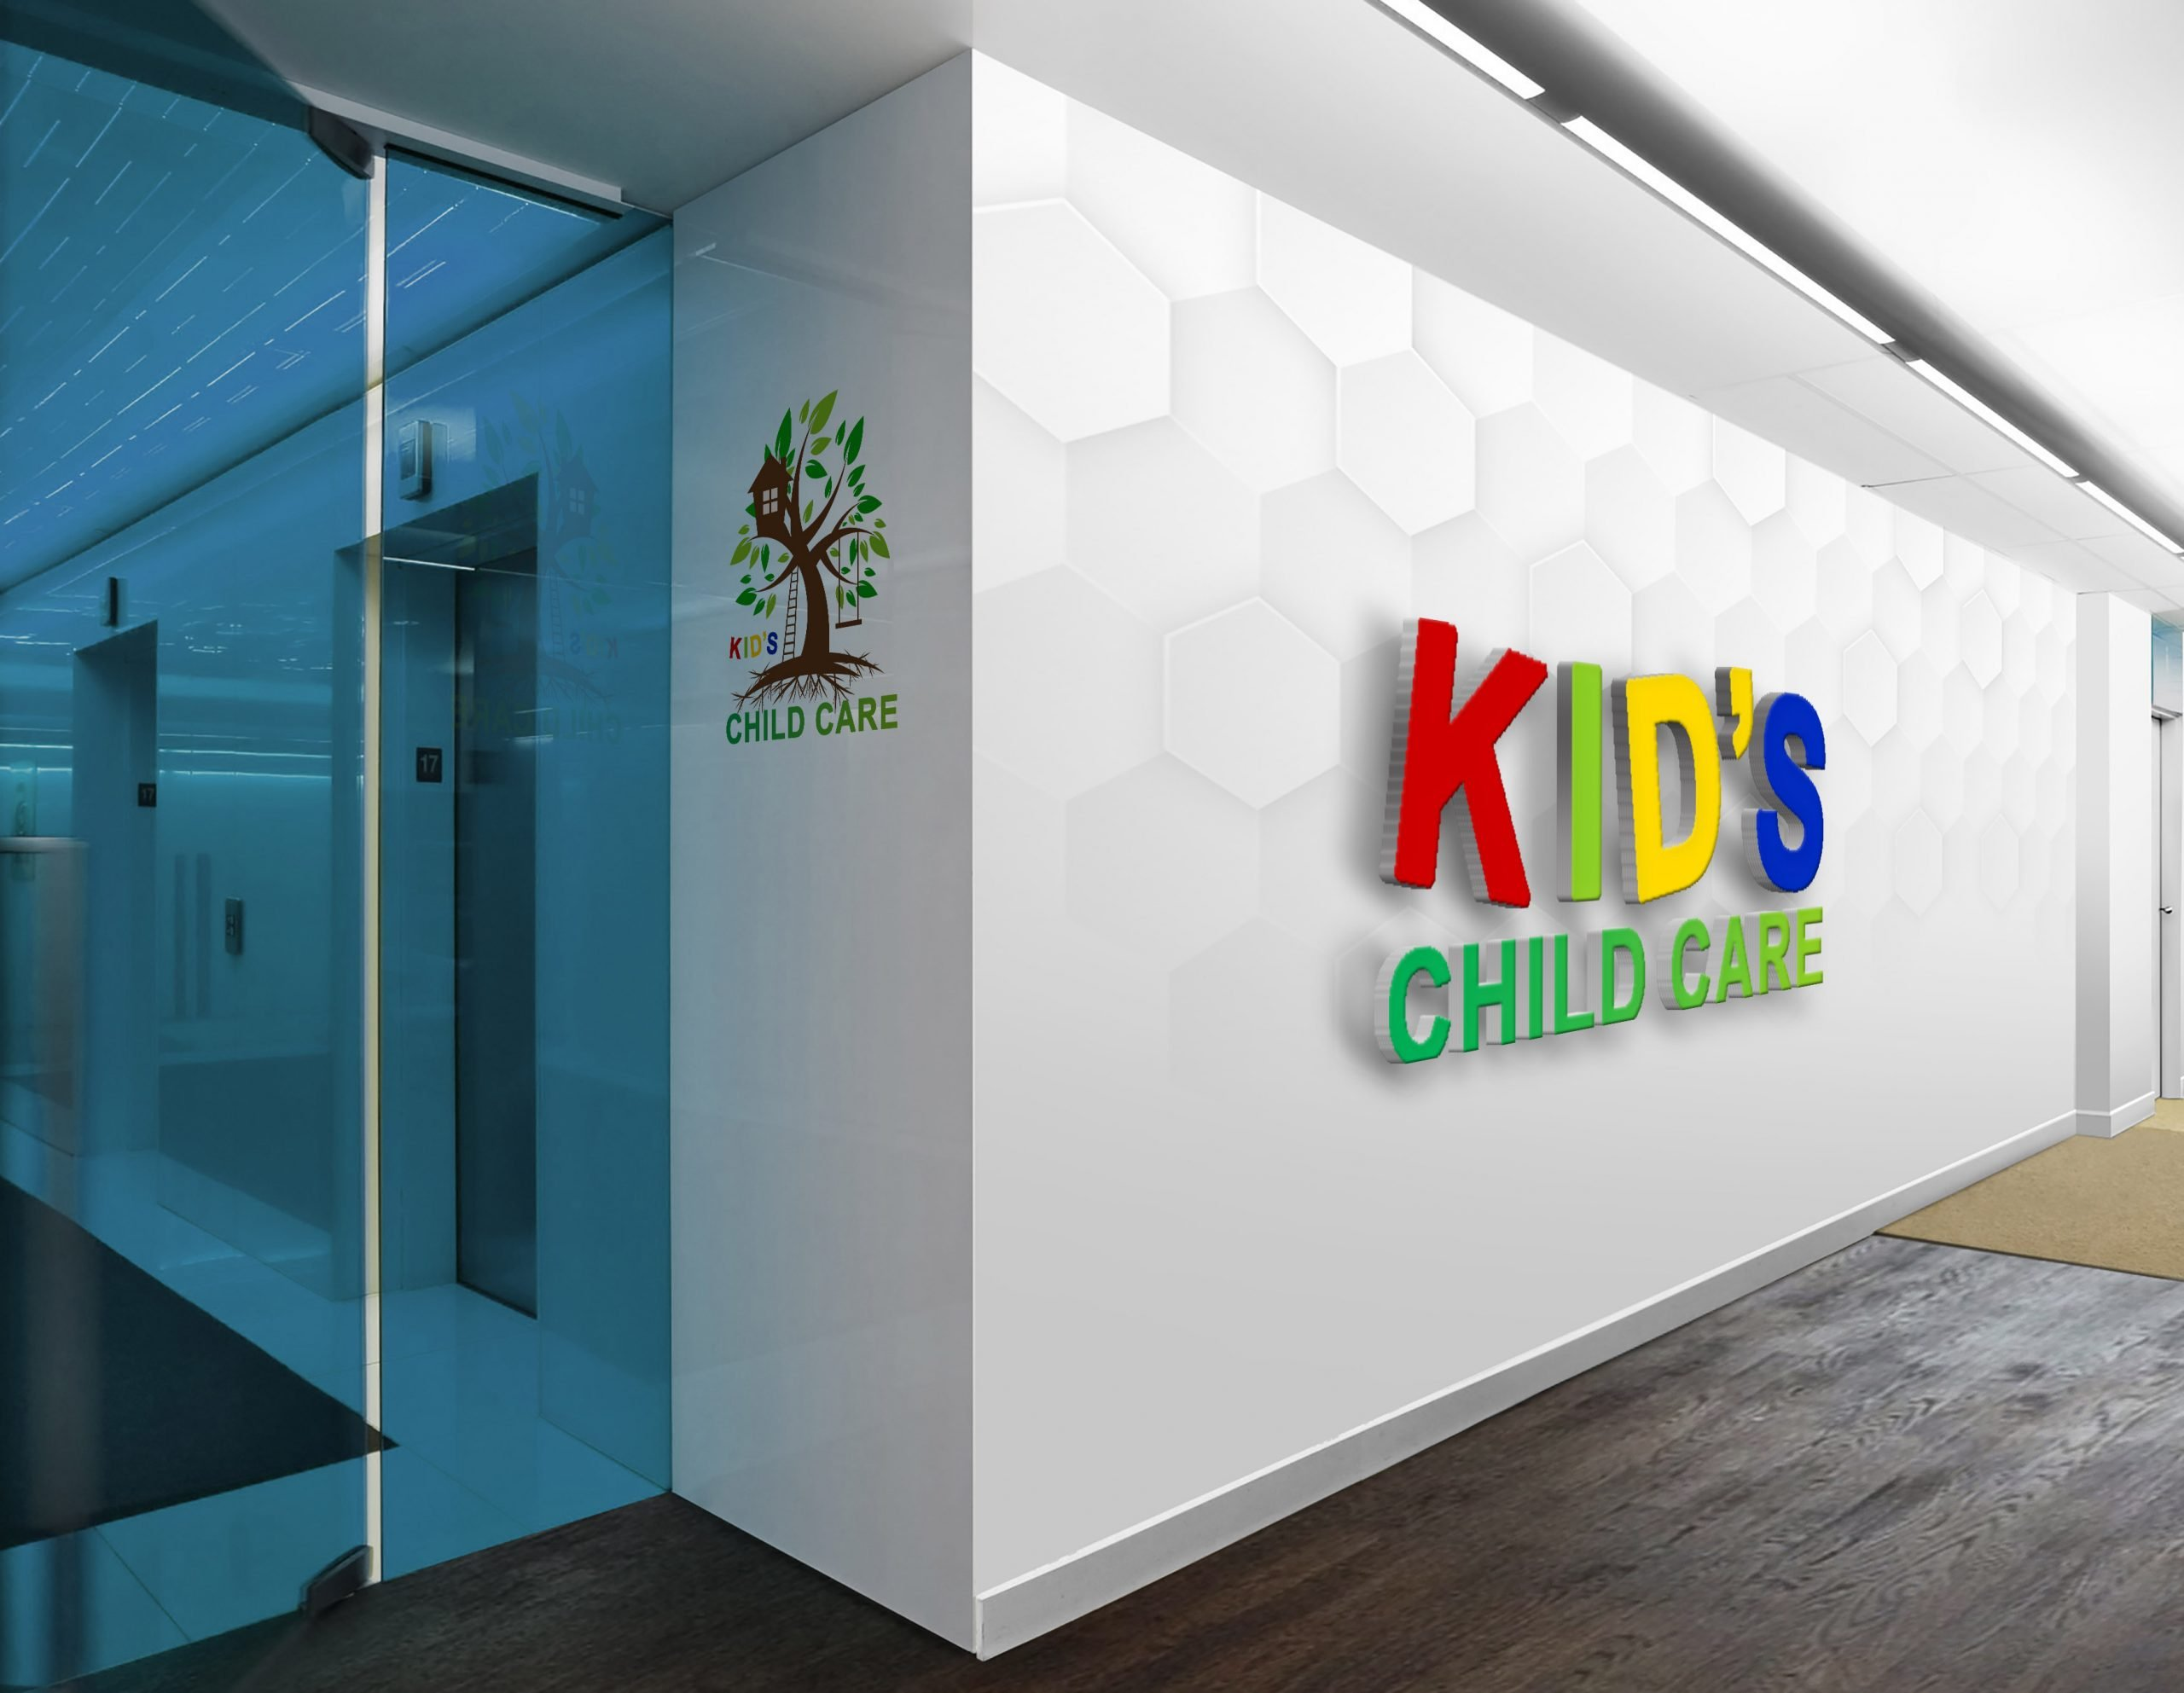 Logo Design for Child Care Company on wall